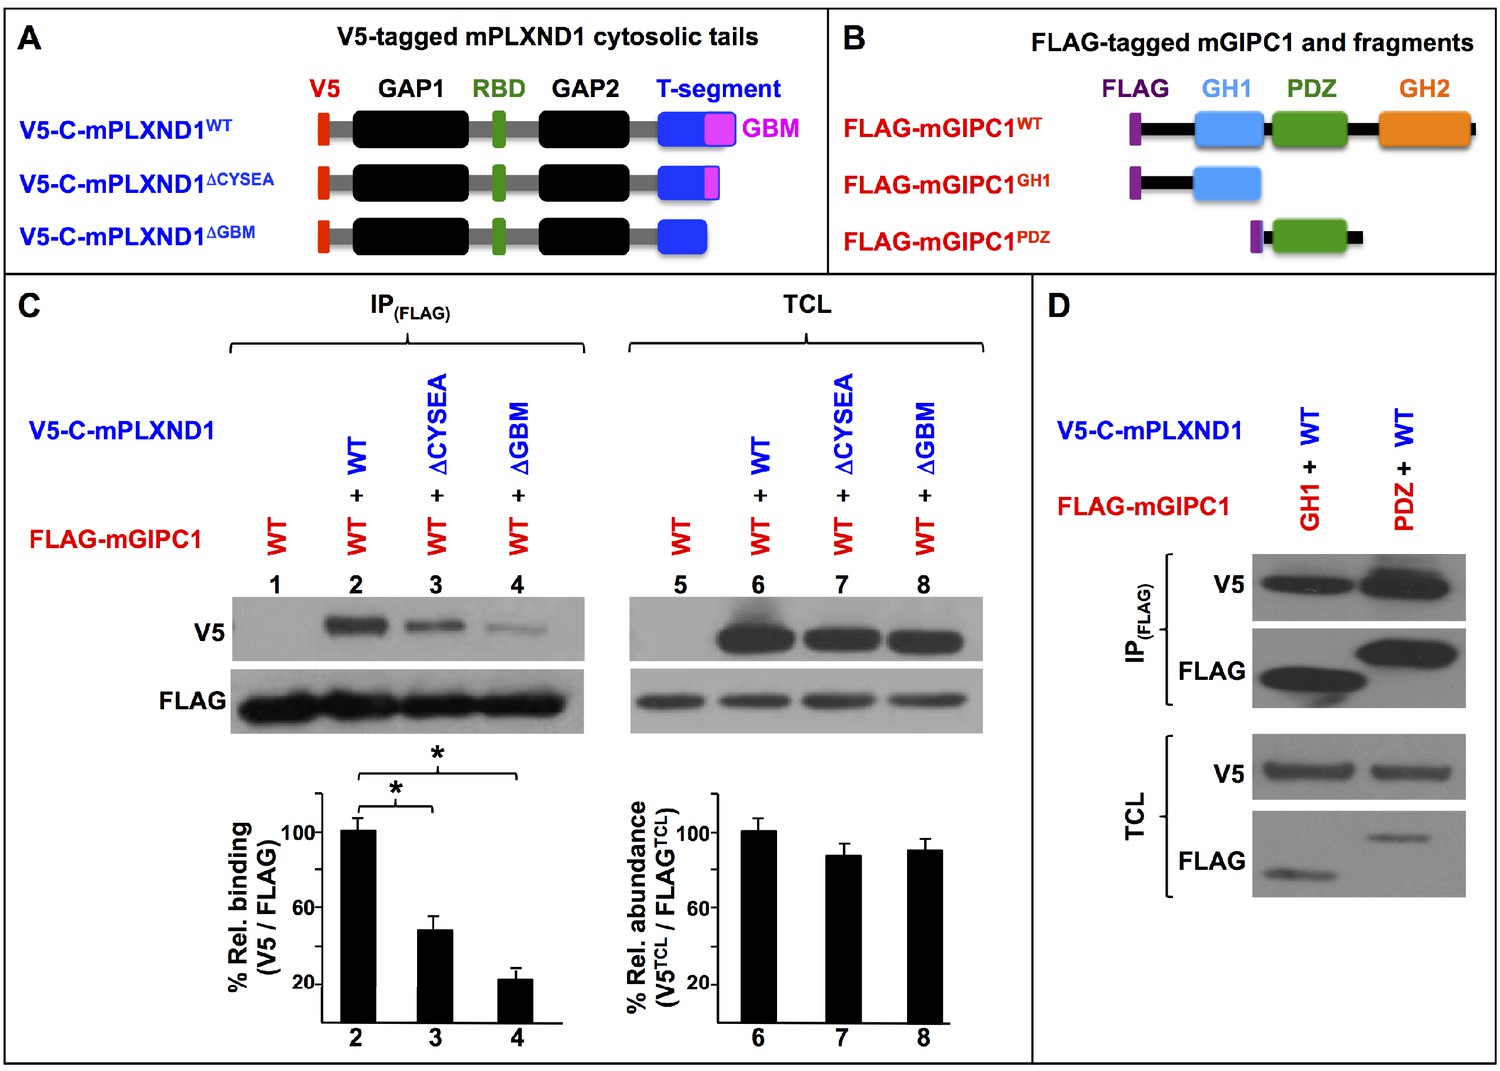 GIPC proteins negatively modulate Plexind1 signaling during